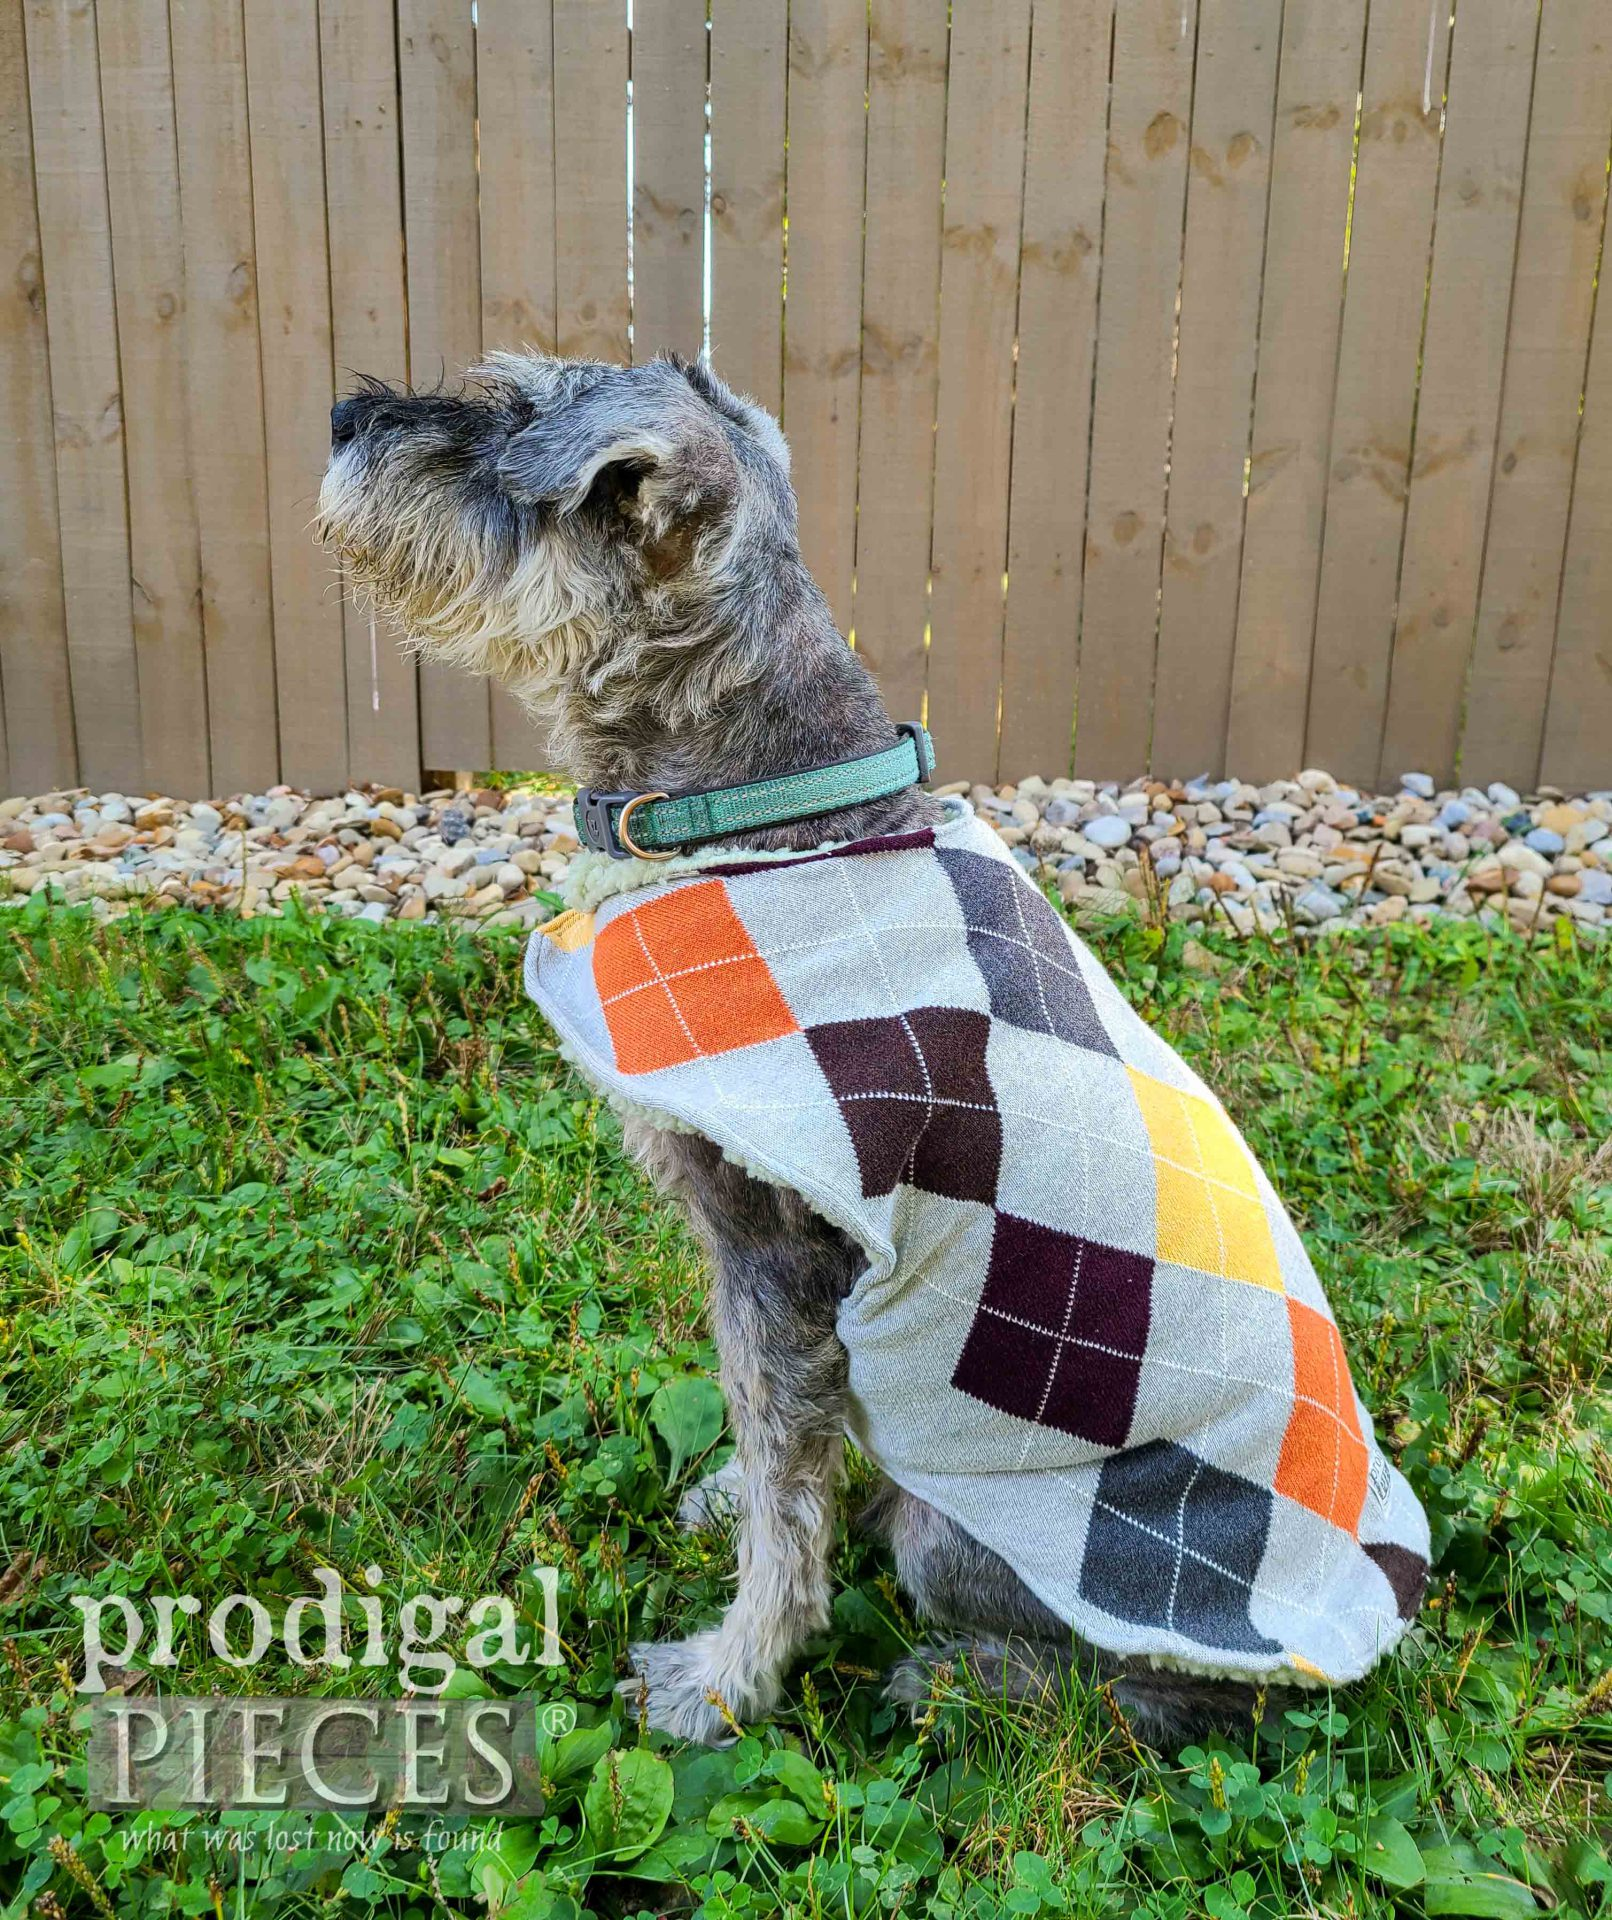 Mini Schnauzer Dog Coat from Upcycled Sweaters by Larissa of Prodigal Pieces | prodigalpieces.com #prodigalpieces #diy #pets #dogs #handmade